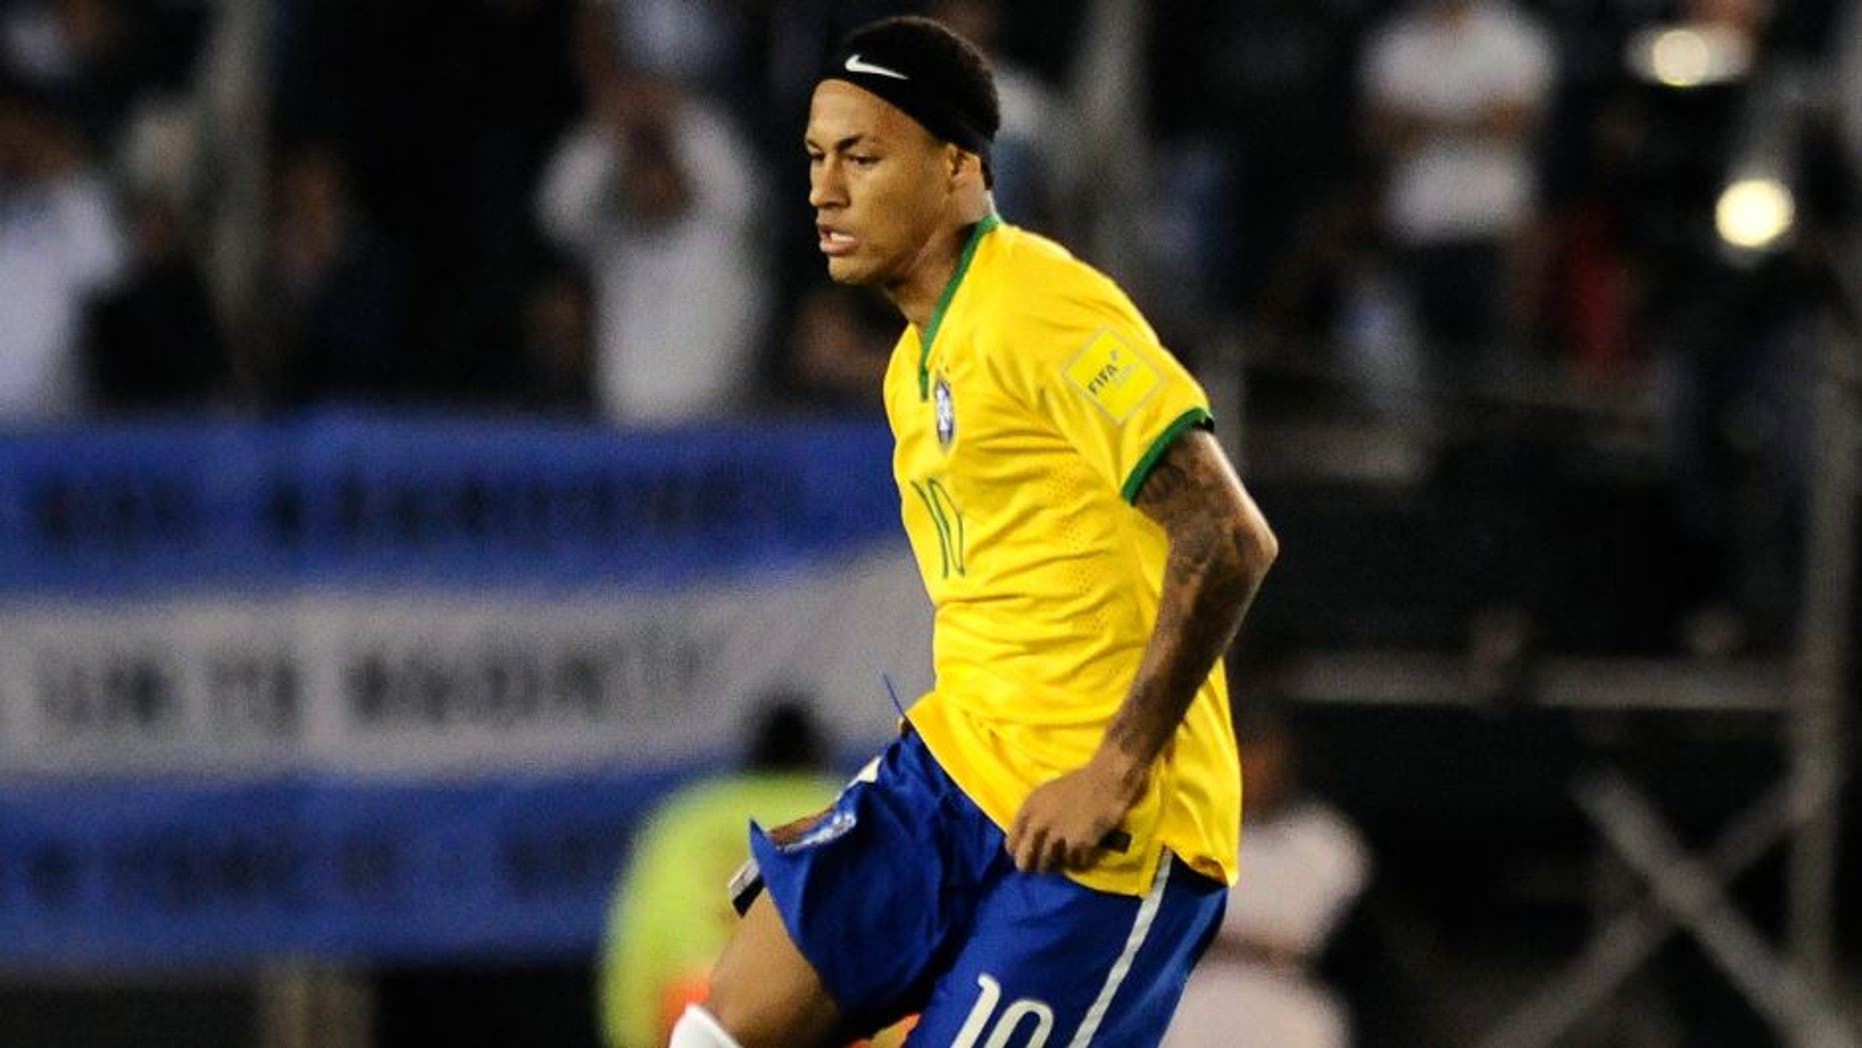 BUENOS AIRES, ARGENTINA - NOVEMBER 13: Neymar Jr of Brazil plays the ball during a match between Argentina and Brazil as part of FIFA 2018 World Cup Qualifiers at Monumental Antonio Vespucio Liberti Stadium on November 13, 2015 in Buenos Aires, Argentina. (Photo by Amilcar Orfali/LatinContent/Getty Images)